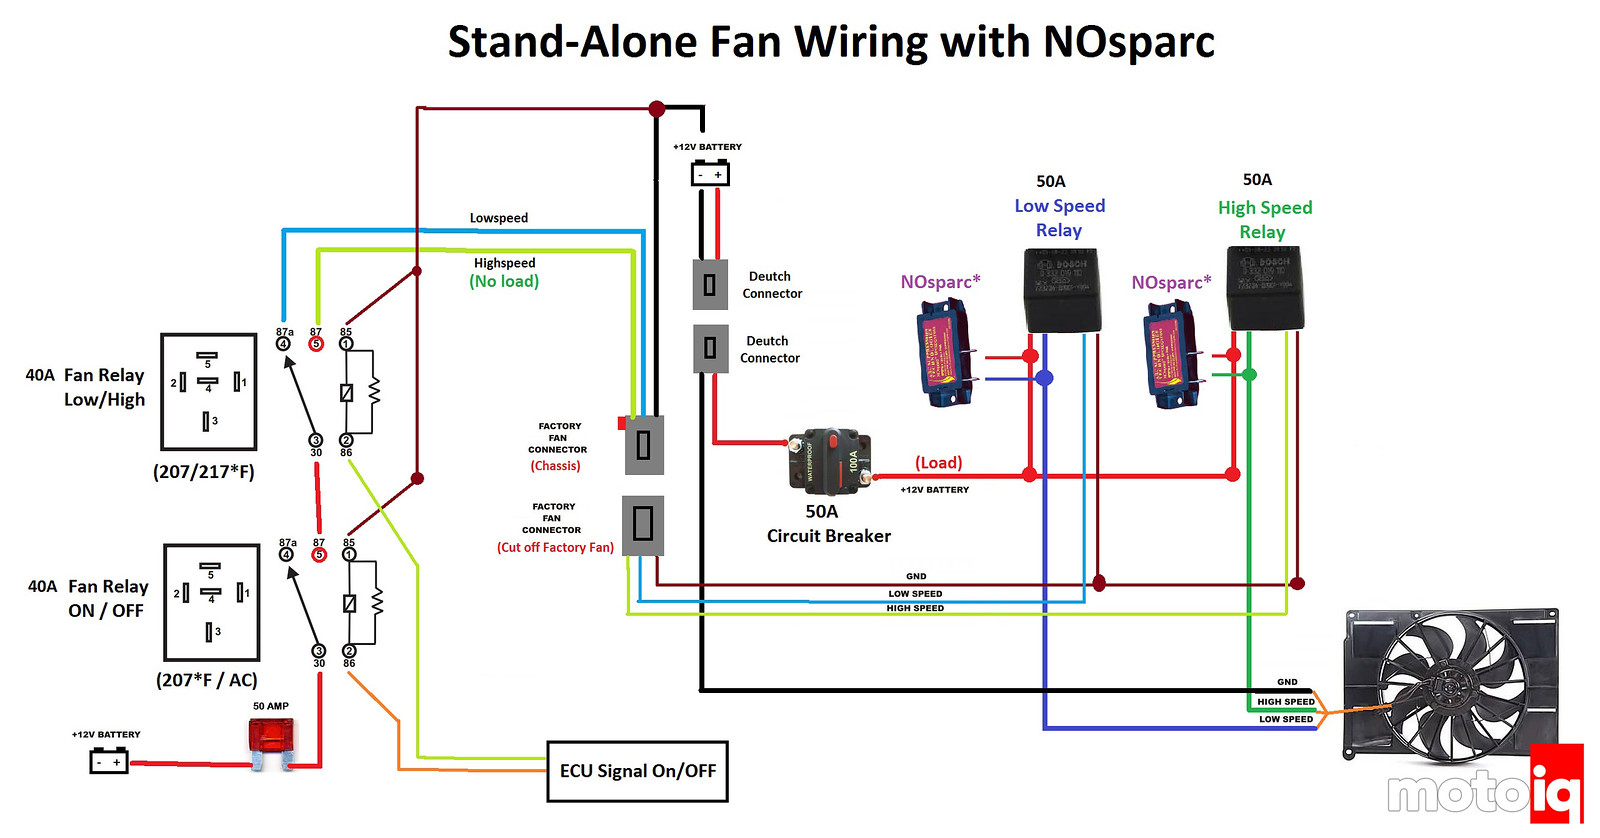 9 NoSparc Wiring Schematic X3 project viper gts part 5 radiator fan & wiring upgrade \u003e motoiq te 610 wiring diagram at crackthecode.co